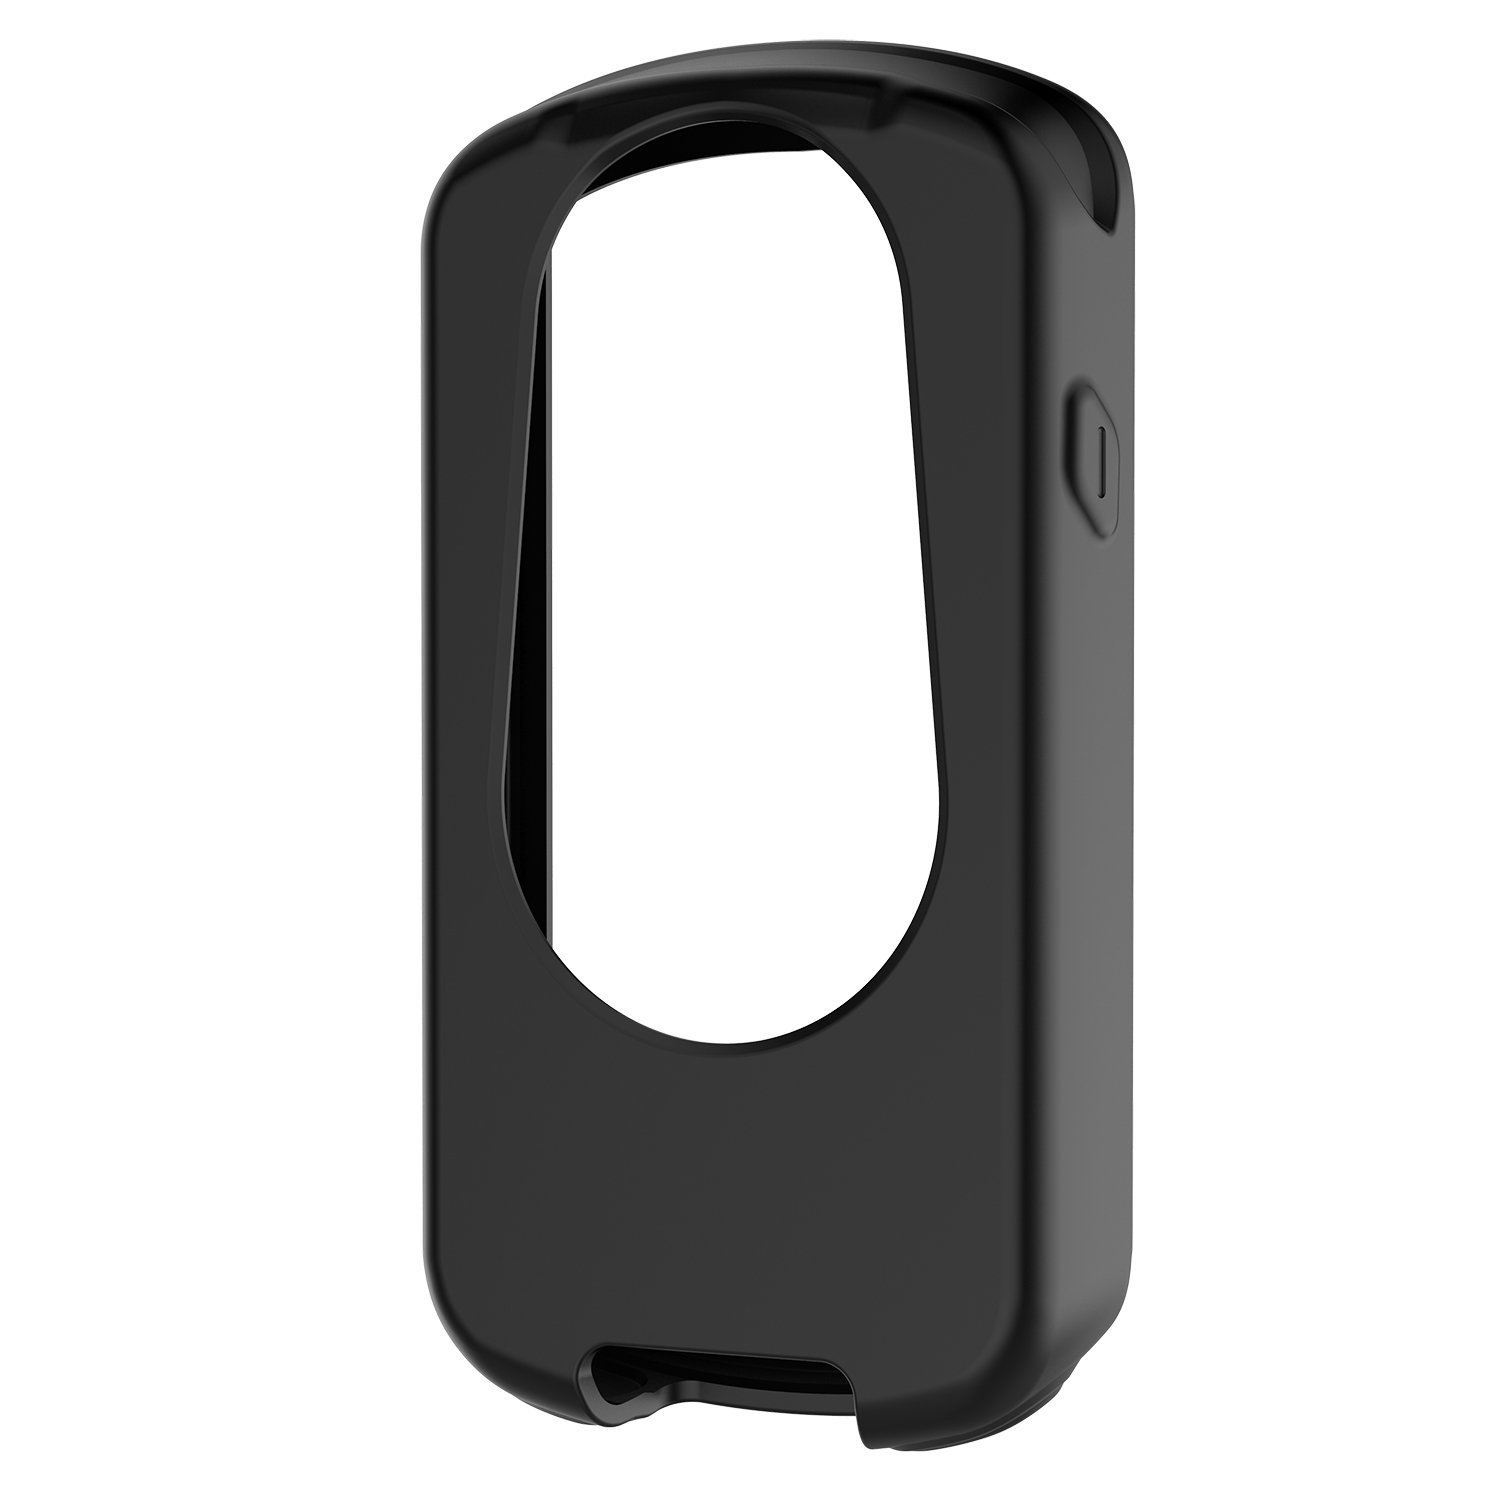 Soft Silicone Protective Case Shell Sleeve Shockproof Screen Cover Protector Pouch for Garmin Edge 1030 Navigation Device AIOIA Protective Cover for Garmin Edge 1030